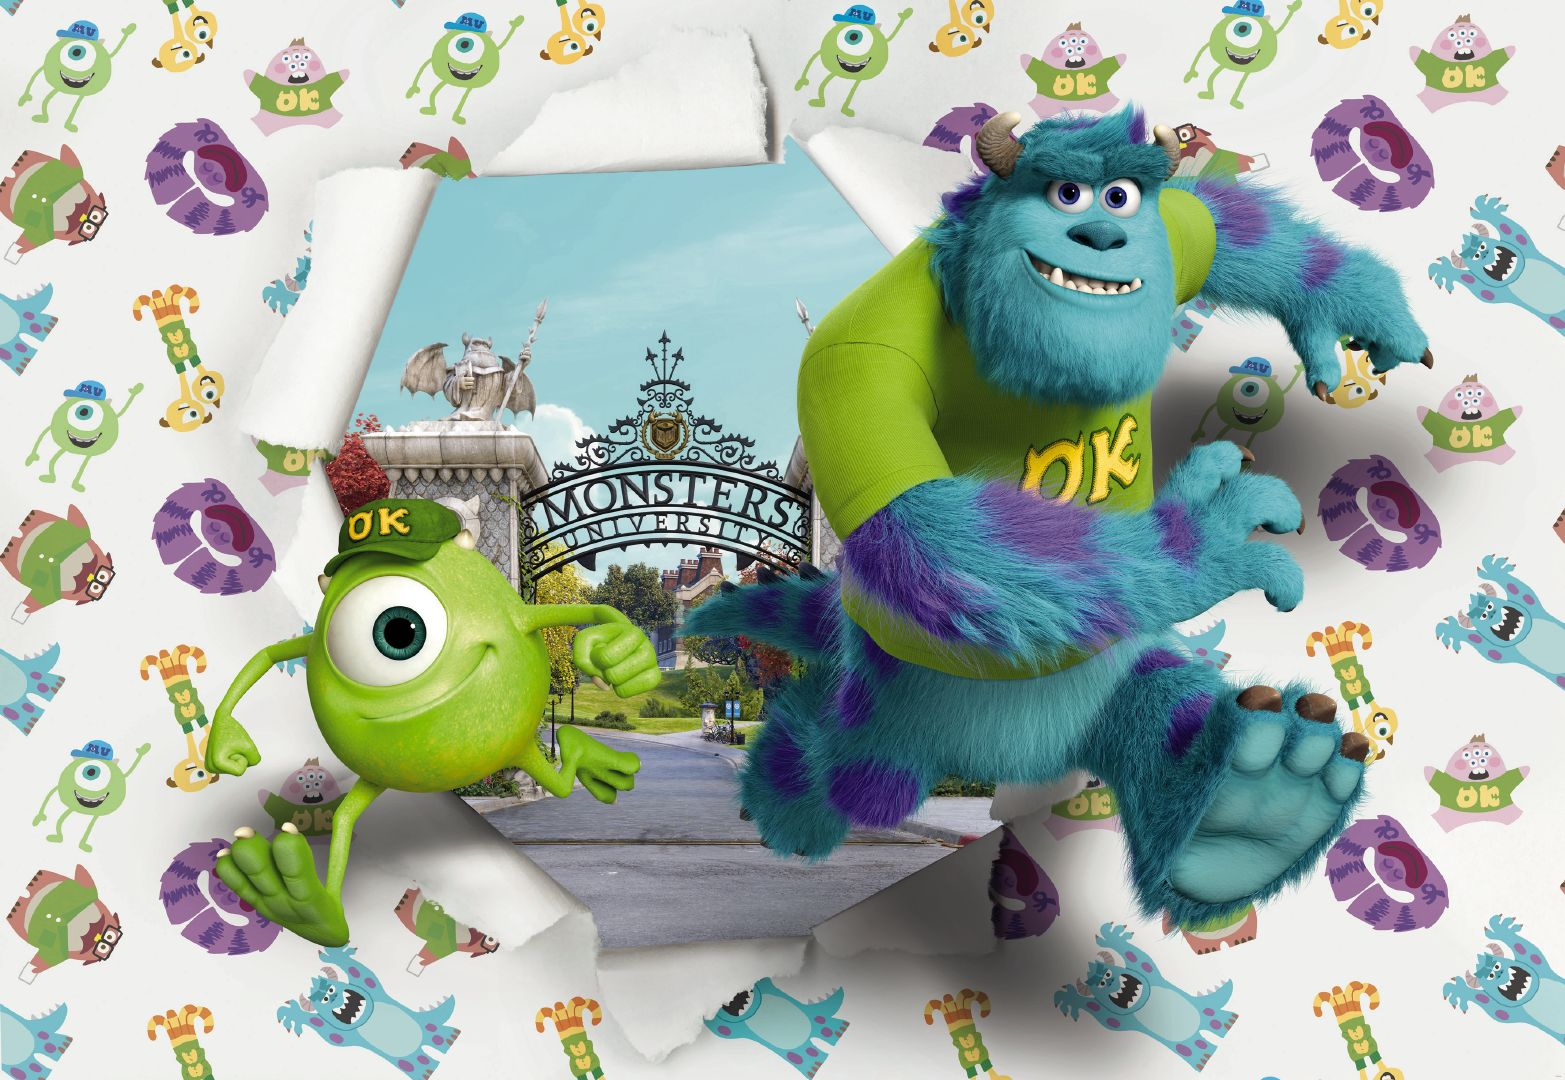 Monsters university 15009 1565x1080 px hdwallsource monsters university 15009 voltagebd Images